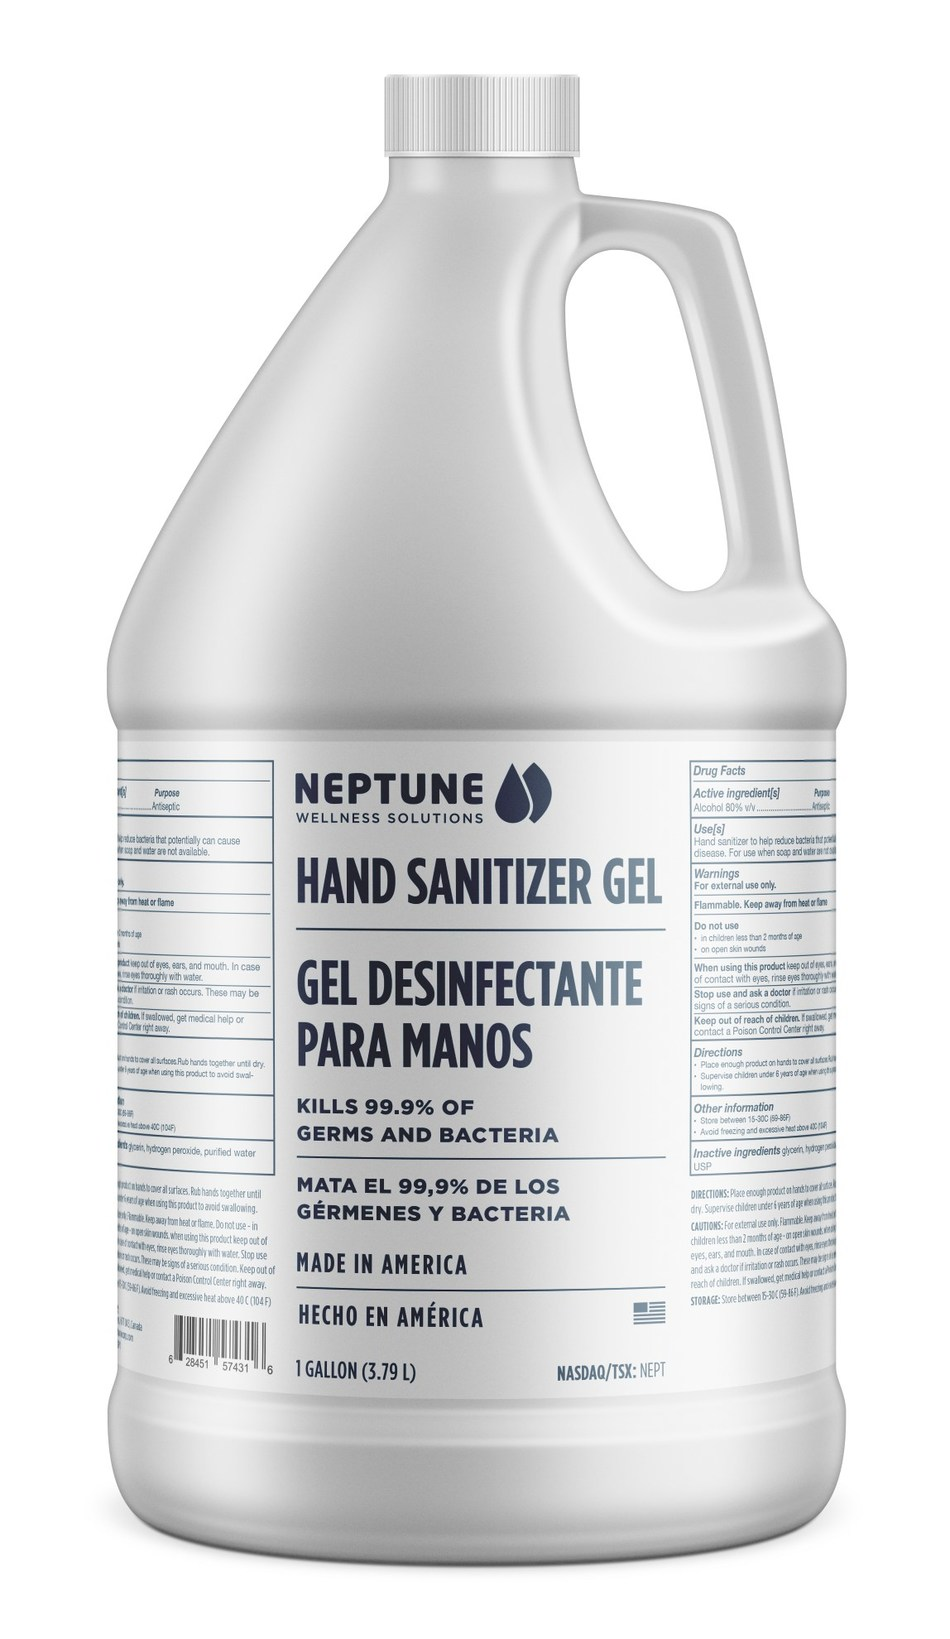 Neptune Wellness Solutions 1 Gallon Hand Sanitizer Gel kills 99.9% of germs and bacteria (CNW Group/Neptune Wellness Solutions Inc.)